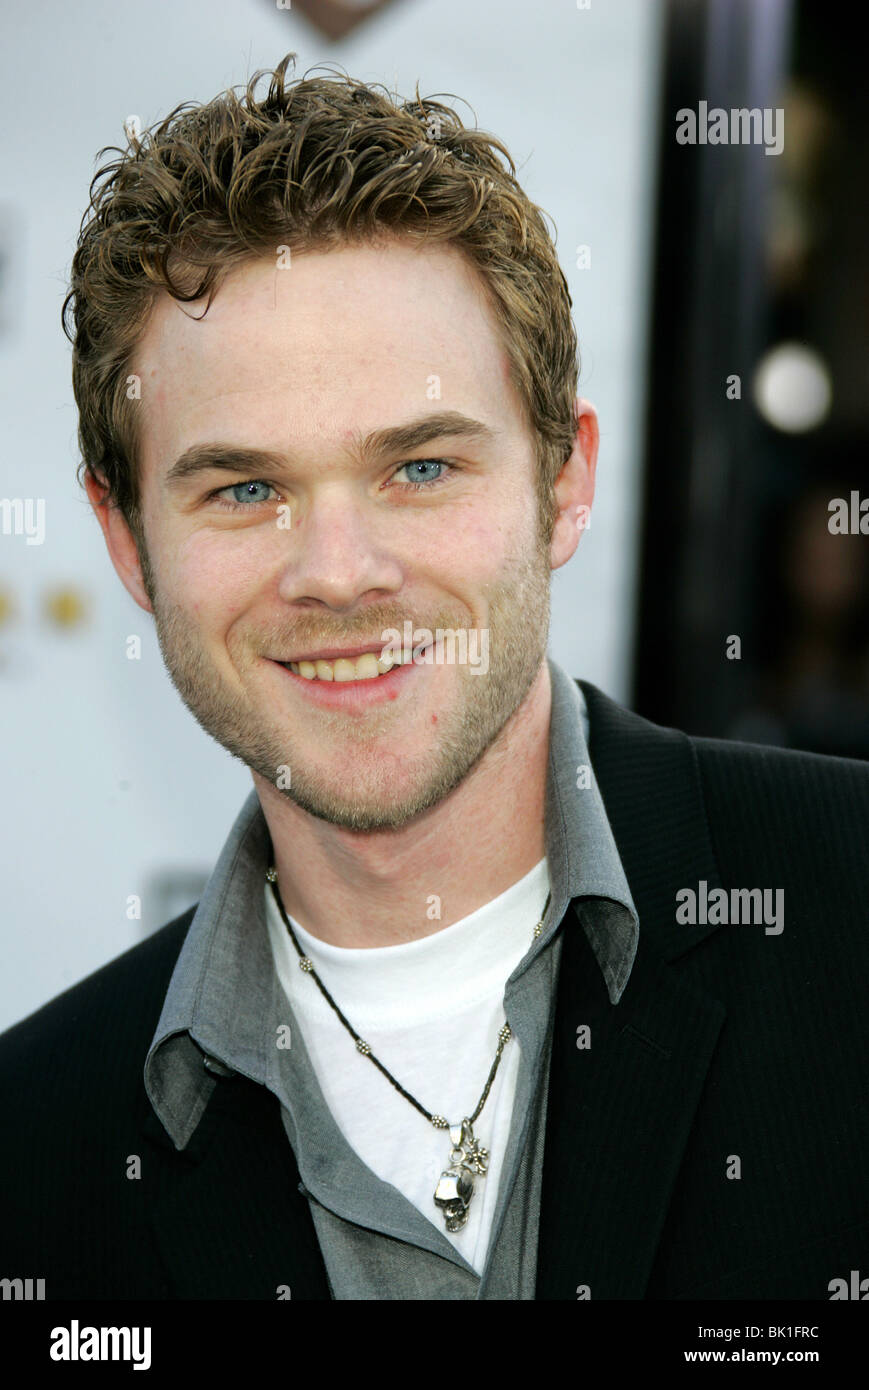 Shawn Ashmore Shawn Ashmore new pictures